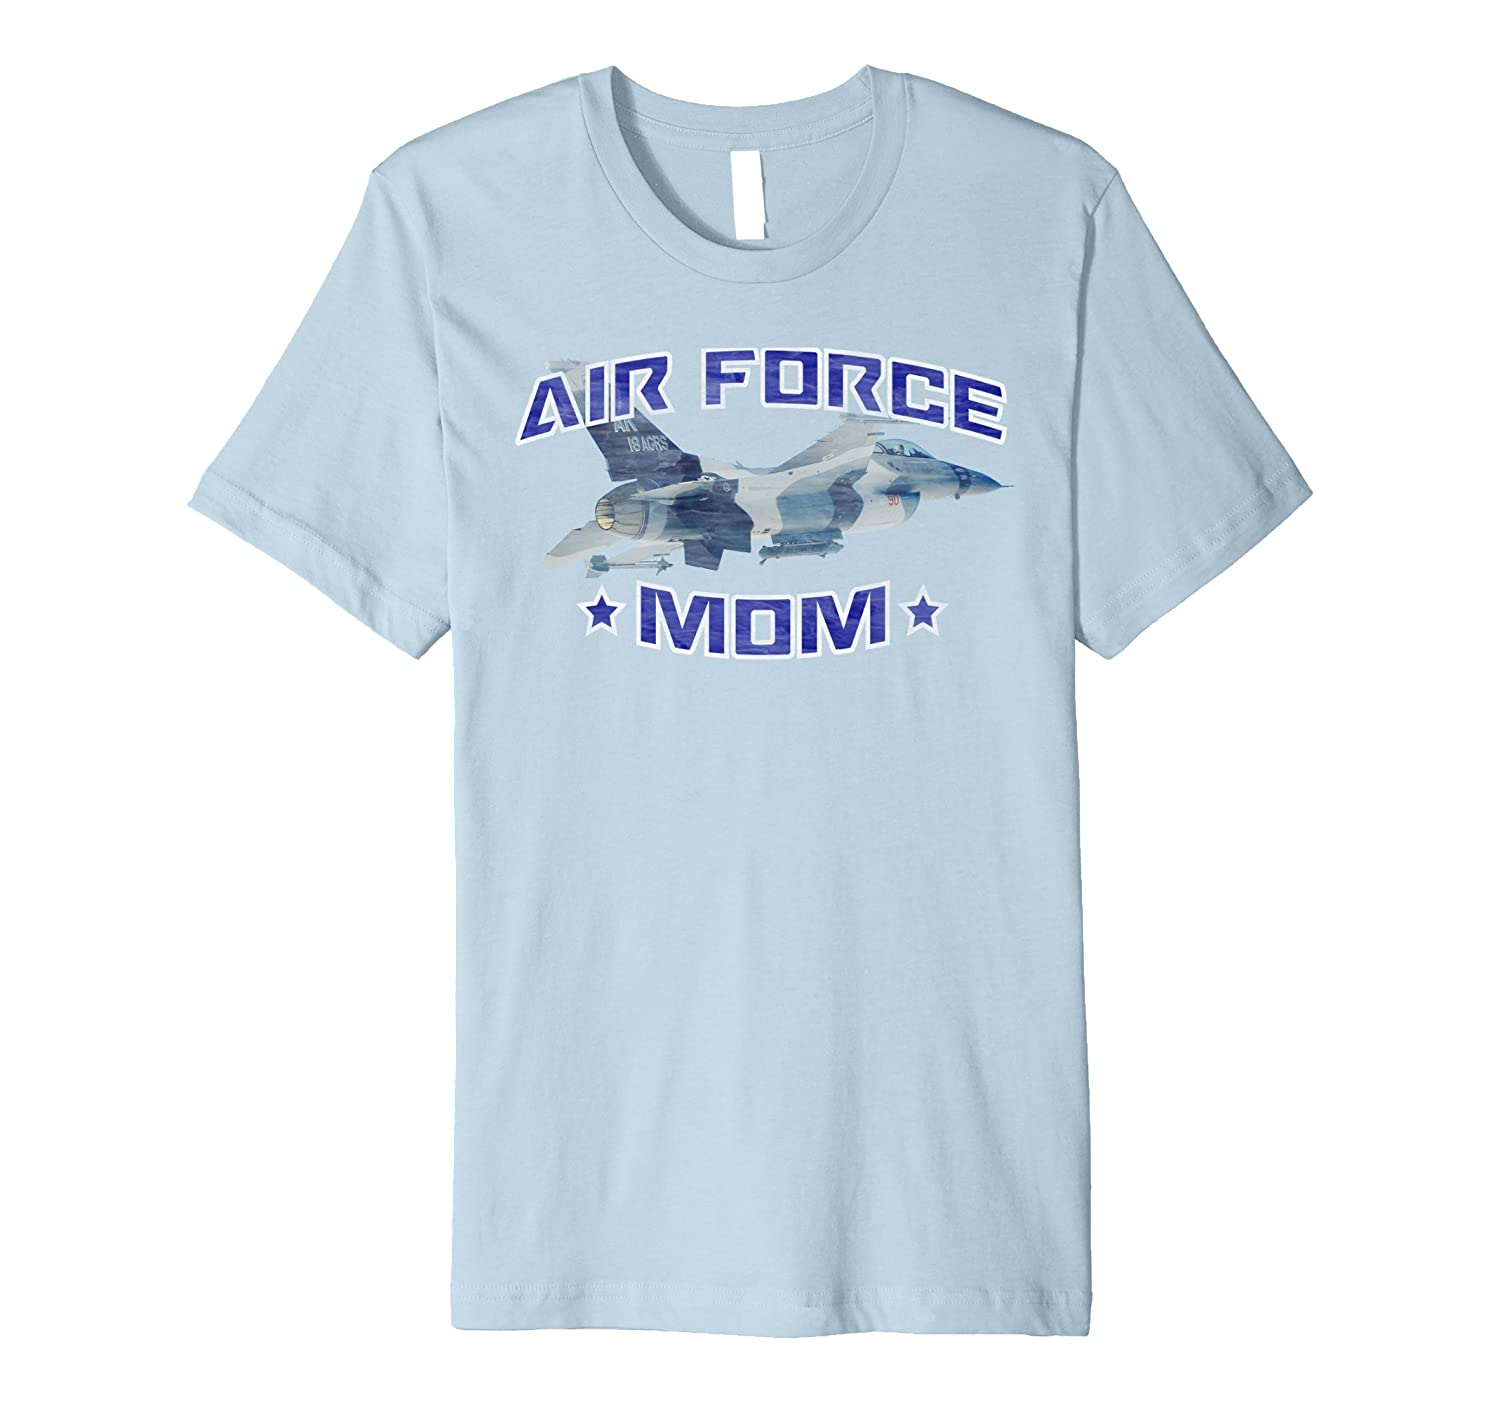 AIR FORCE MOM F-16 FIGHTING FALCON DISTRESSED T-SHIRT